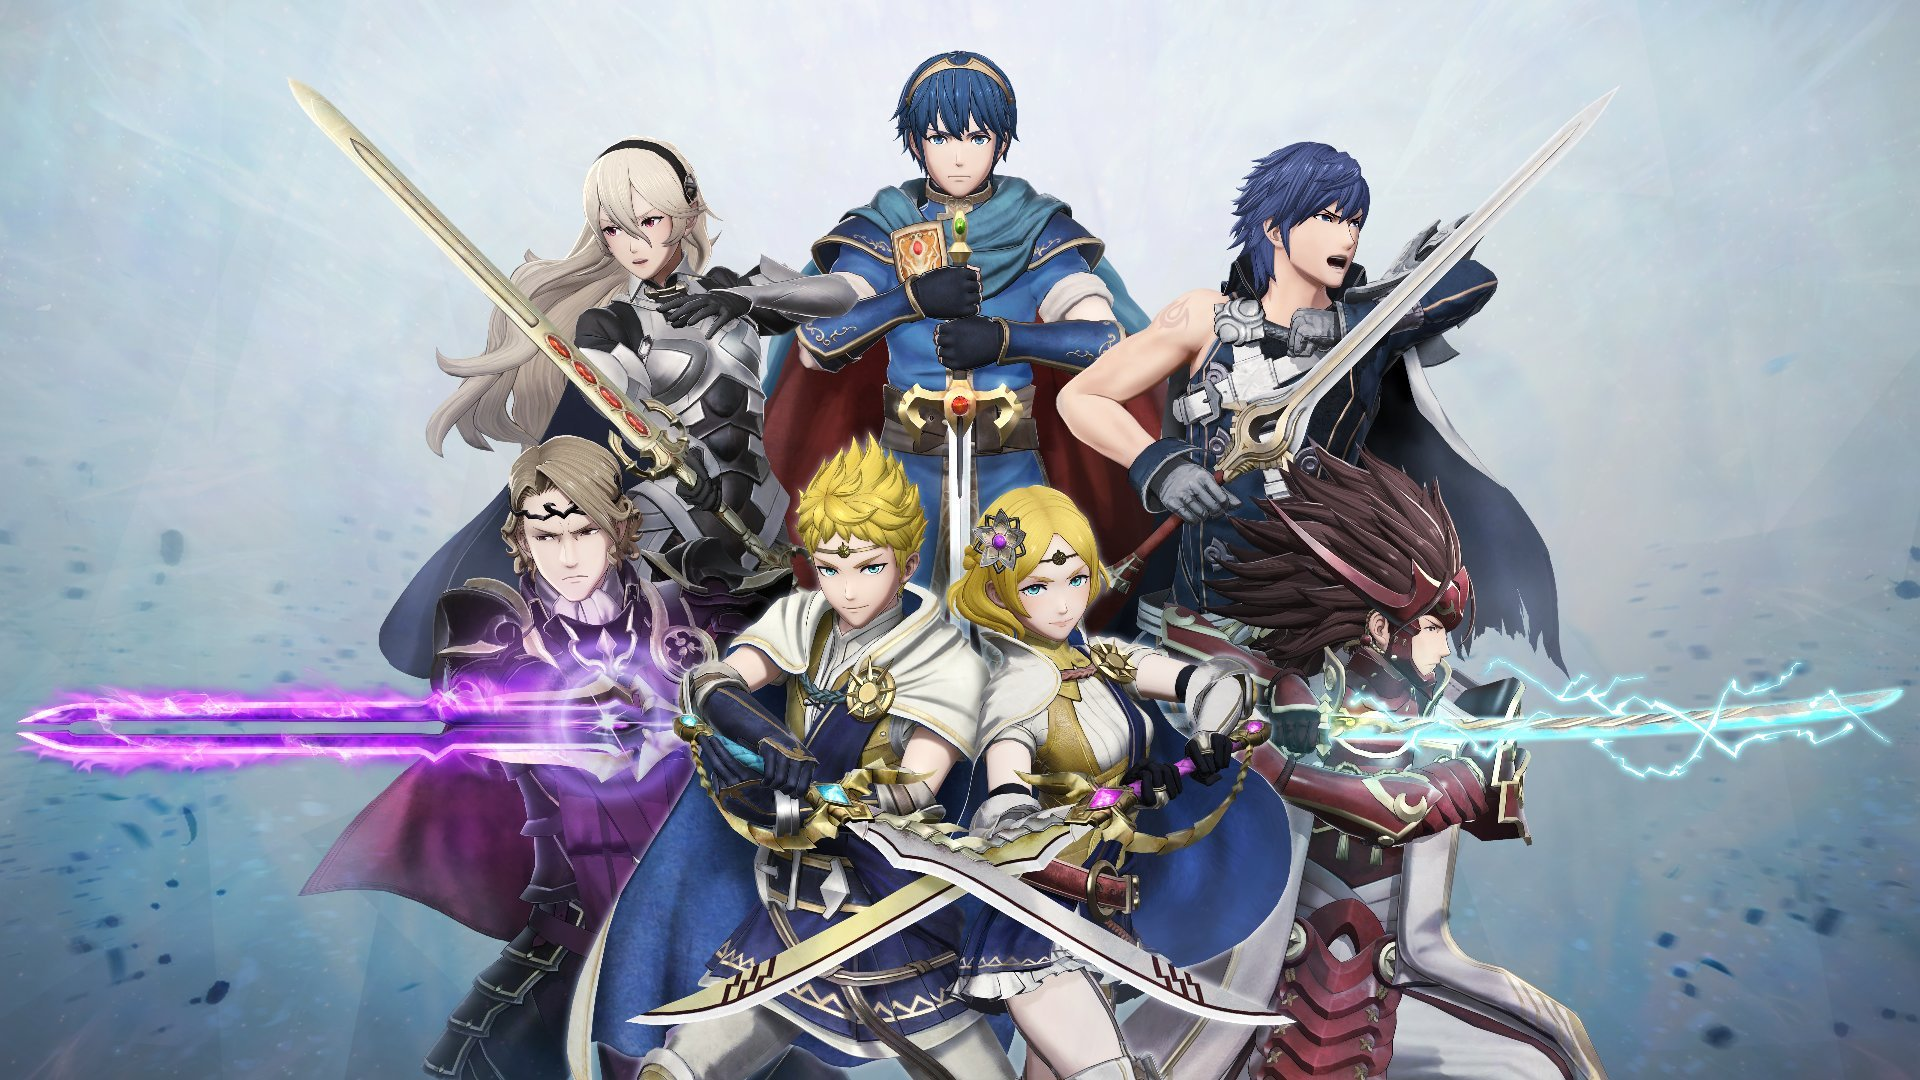 Fire Emblem Warriors interview reveals Lucina was almost cut, twins didn't use swords initially, and more screenshot